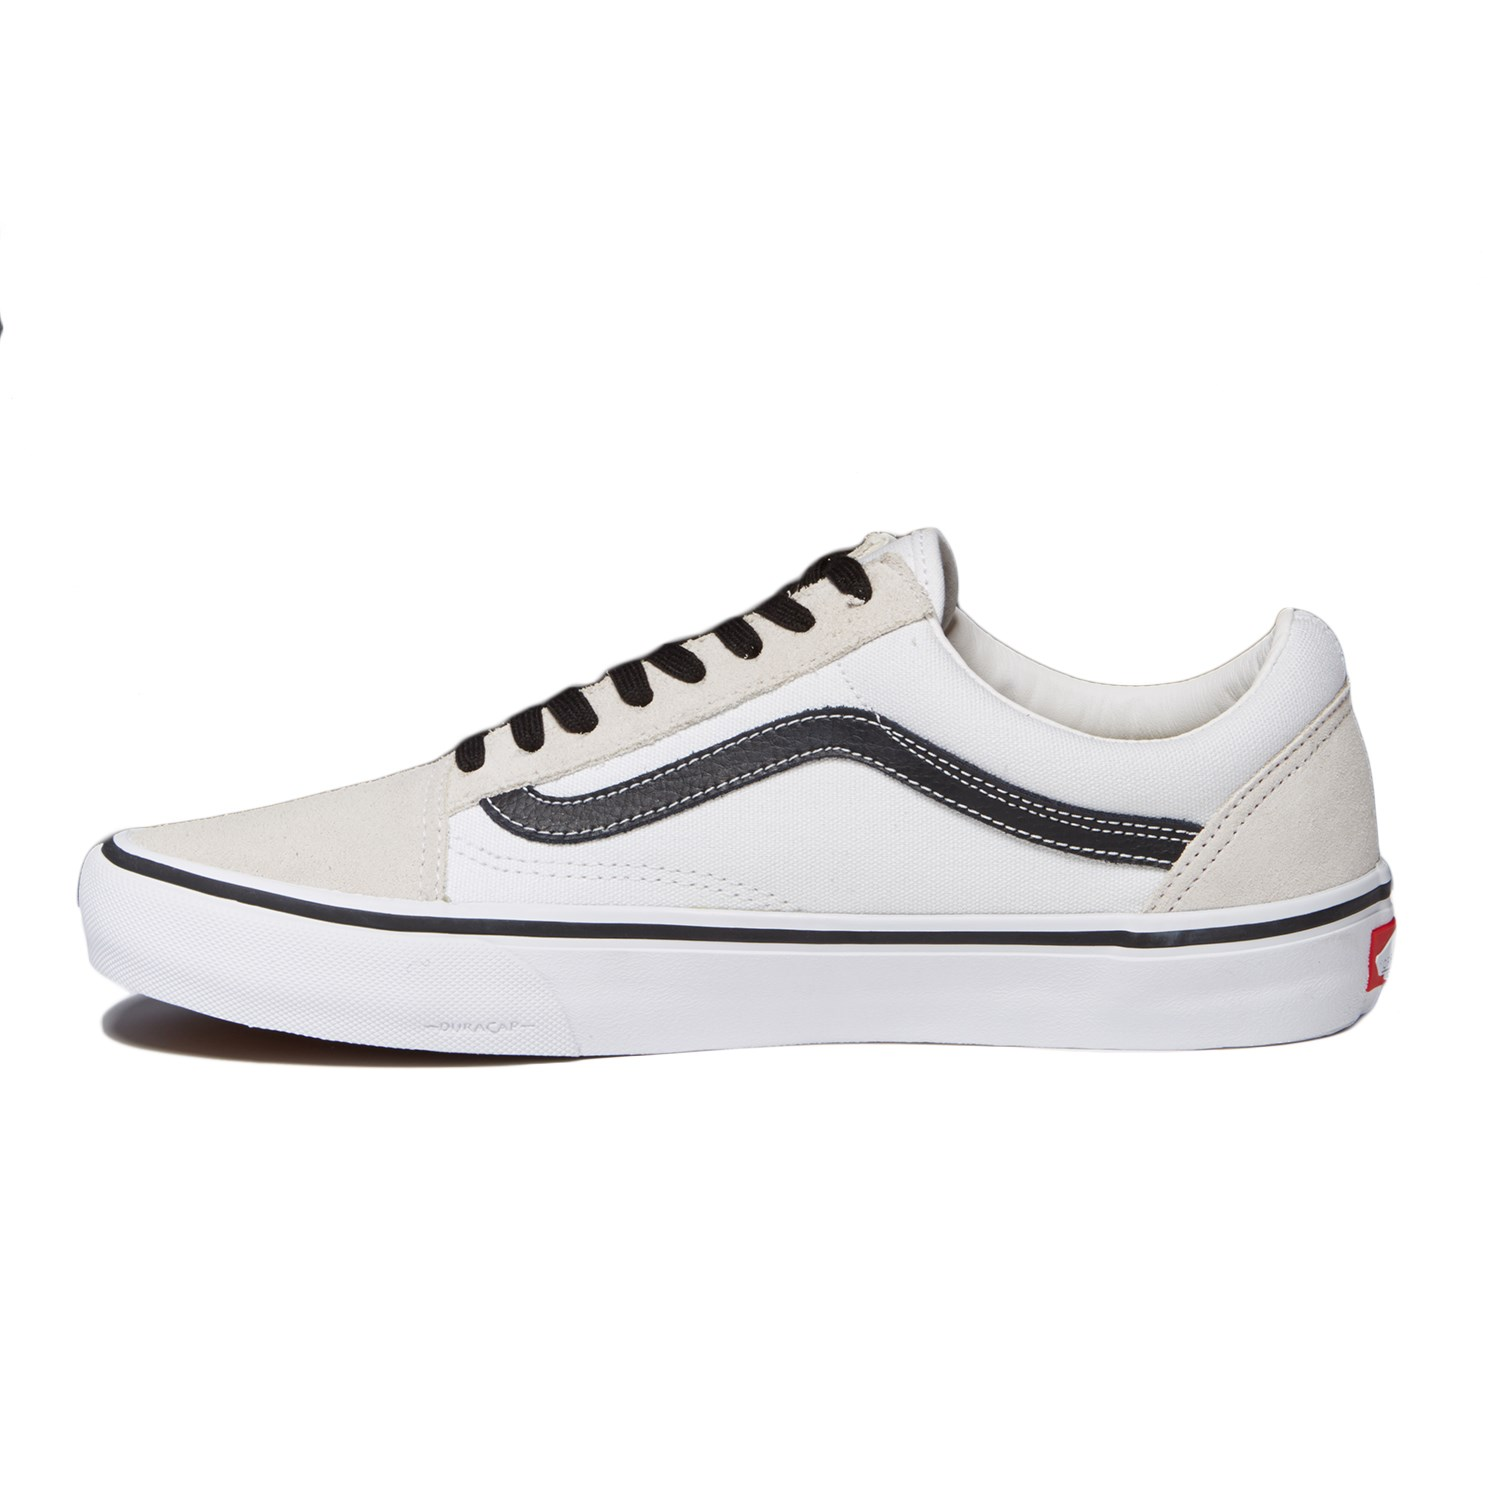 Vans Old Skool Pro 50th Anniversary Shoes  55f8b12f38